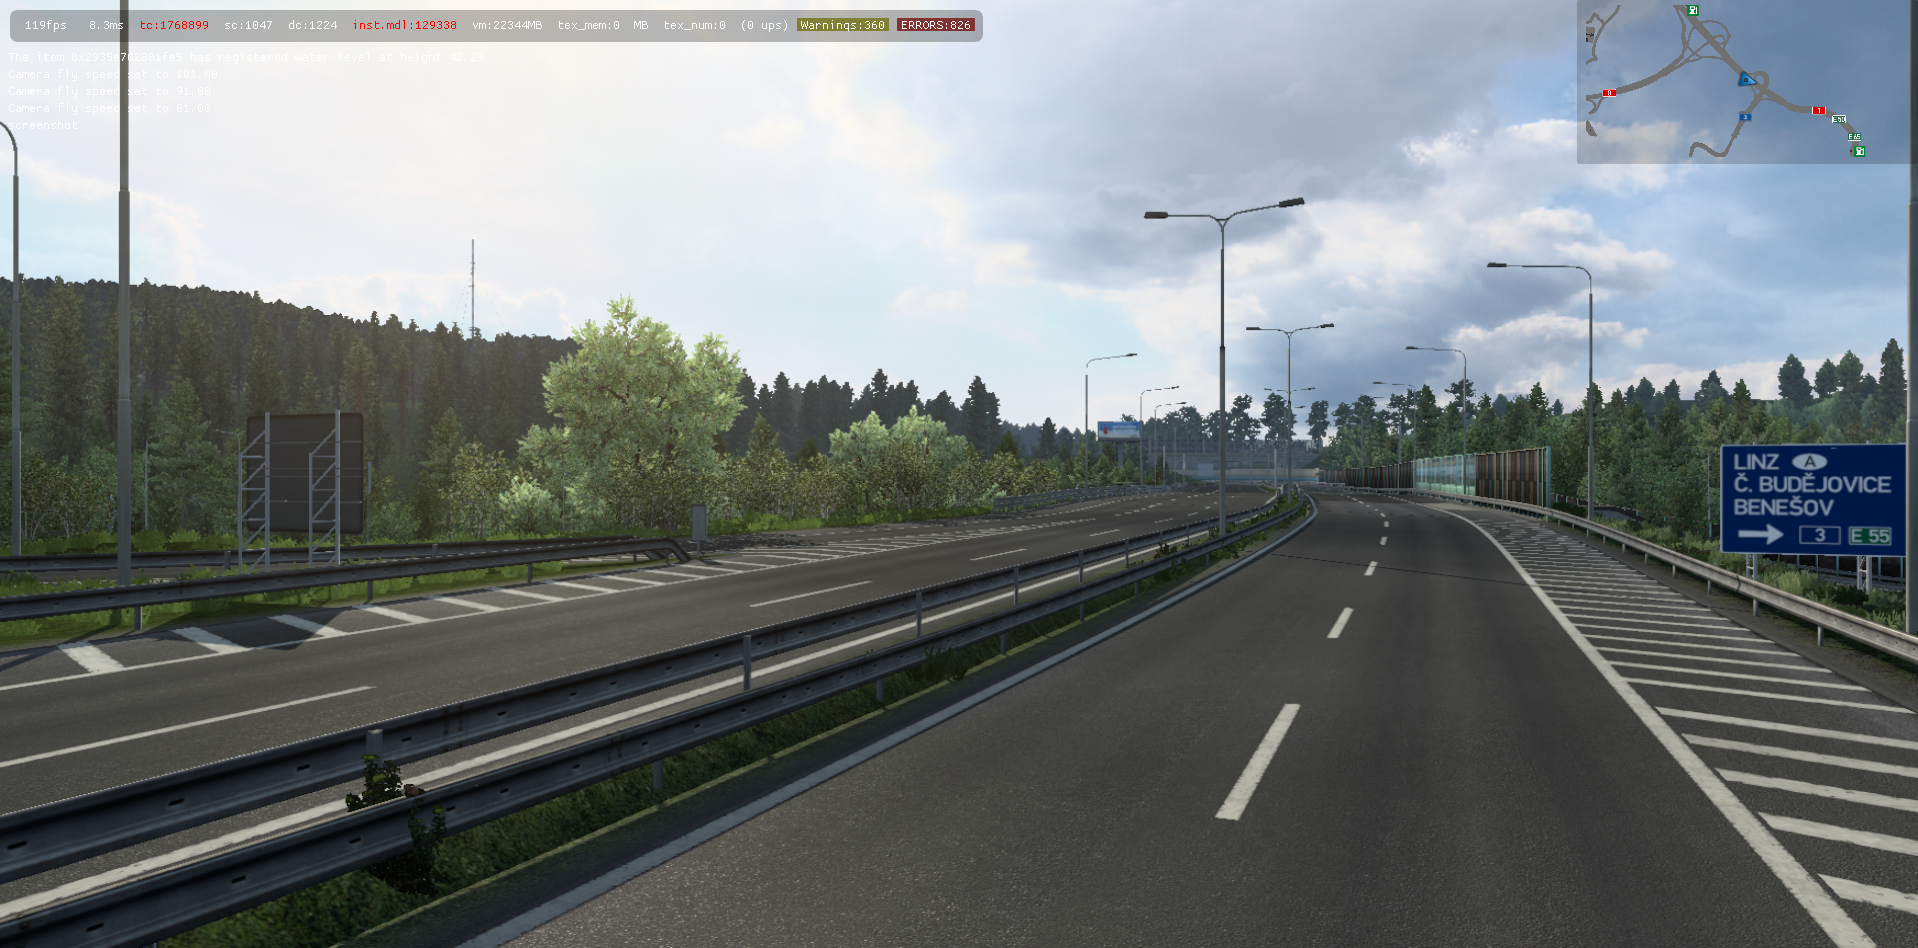 ets2_20210725_234723_00.png